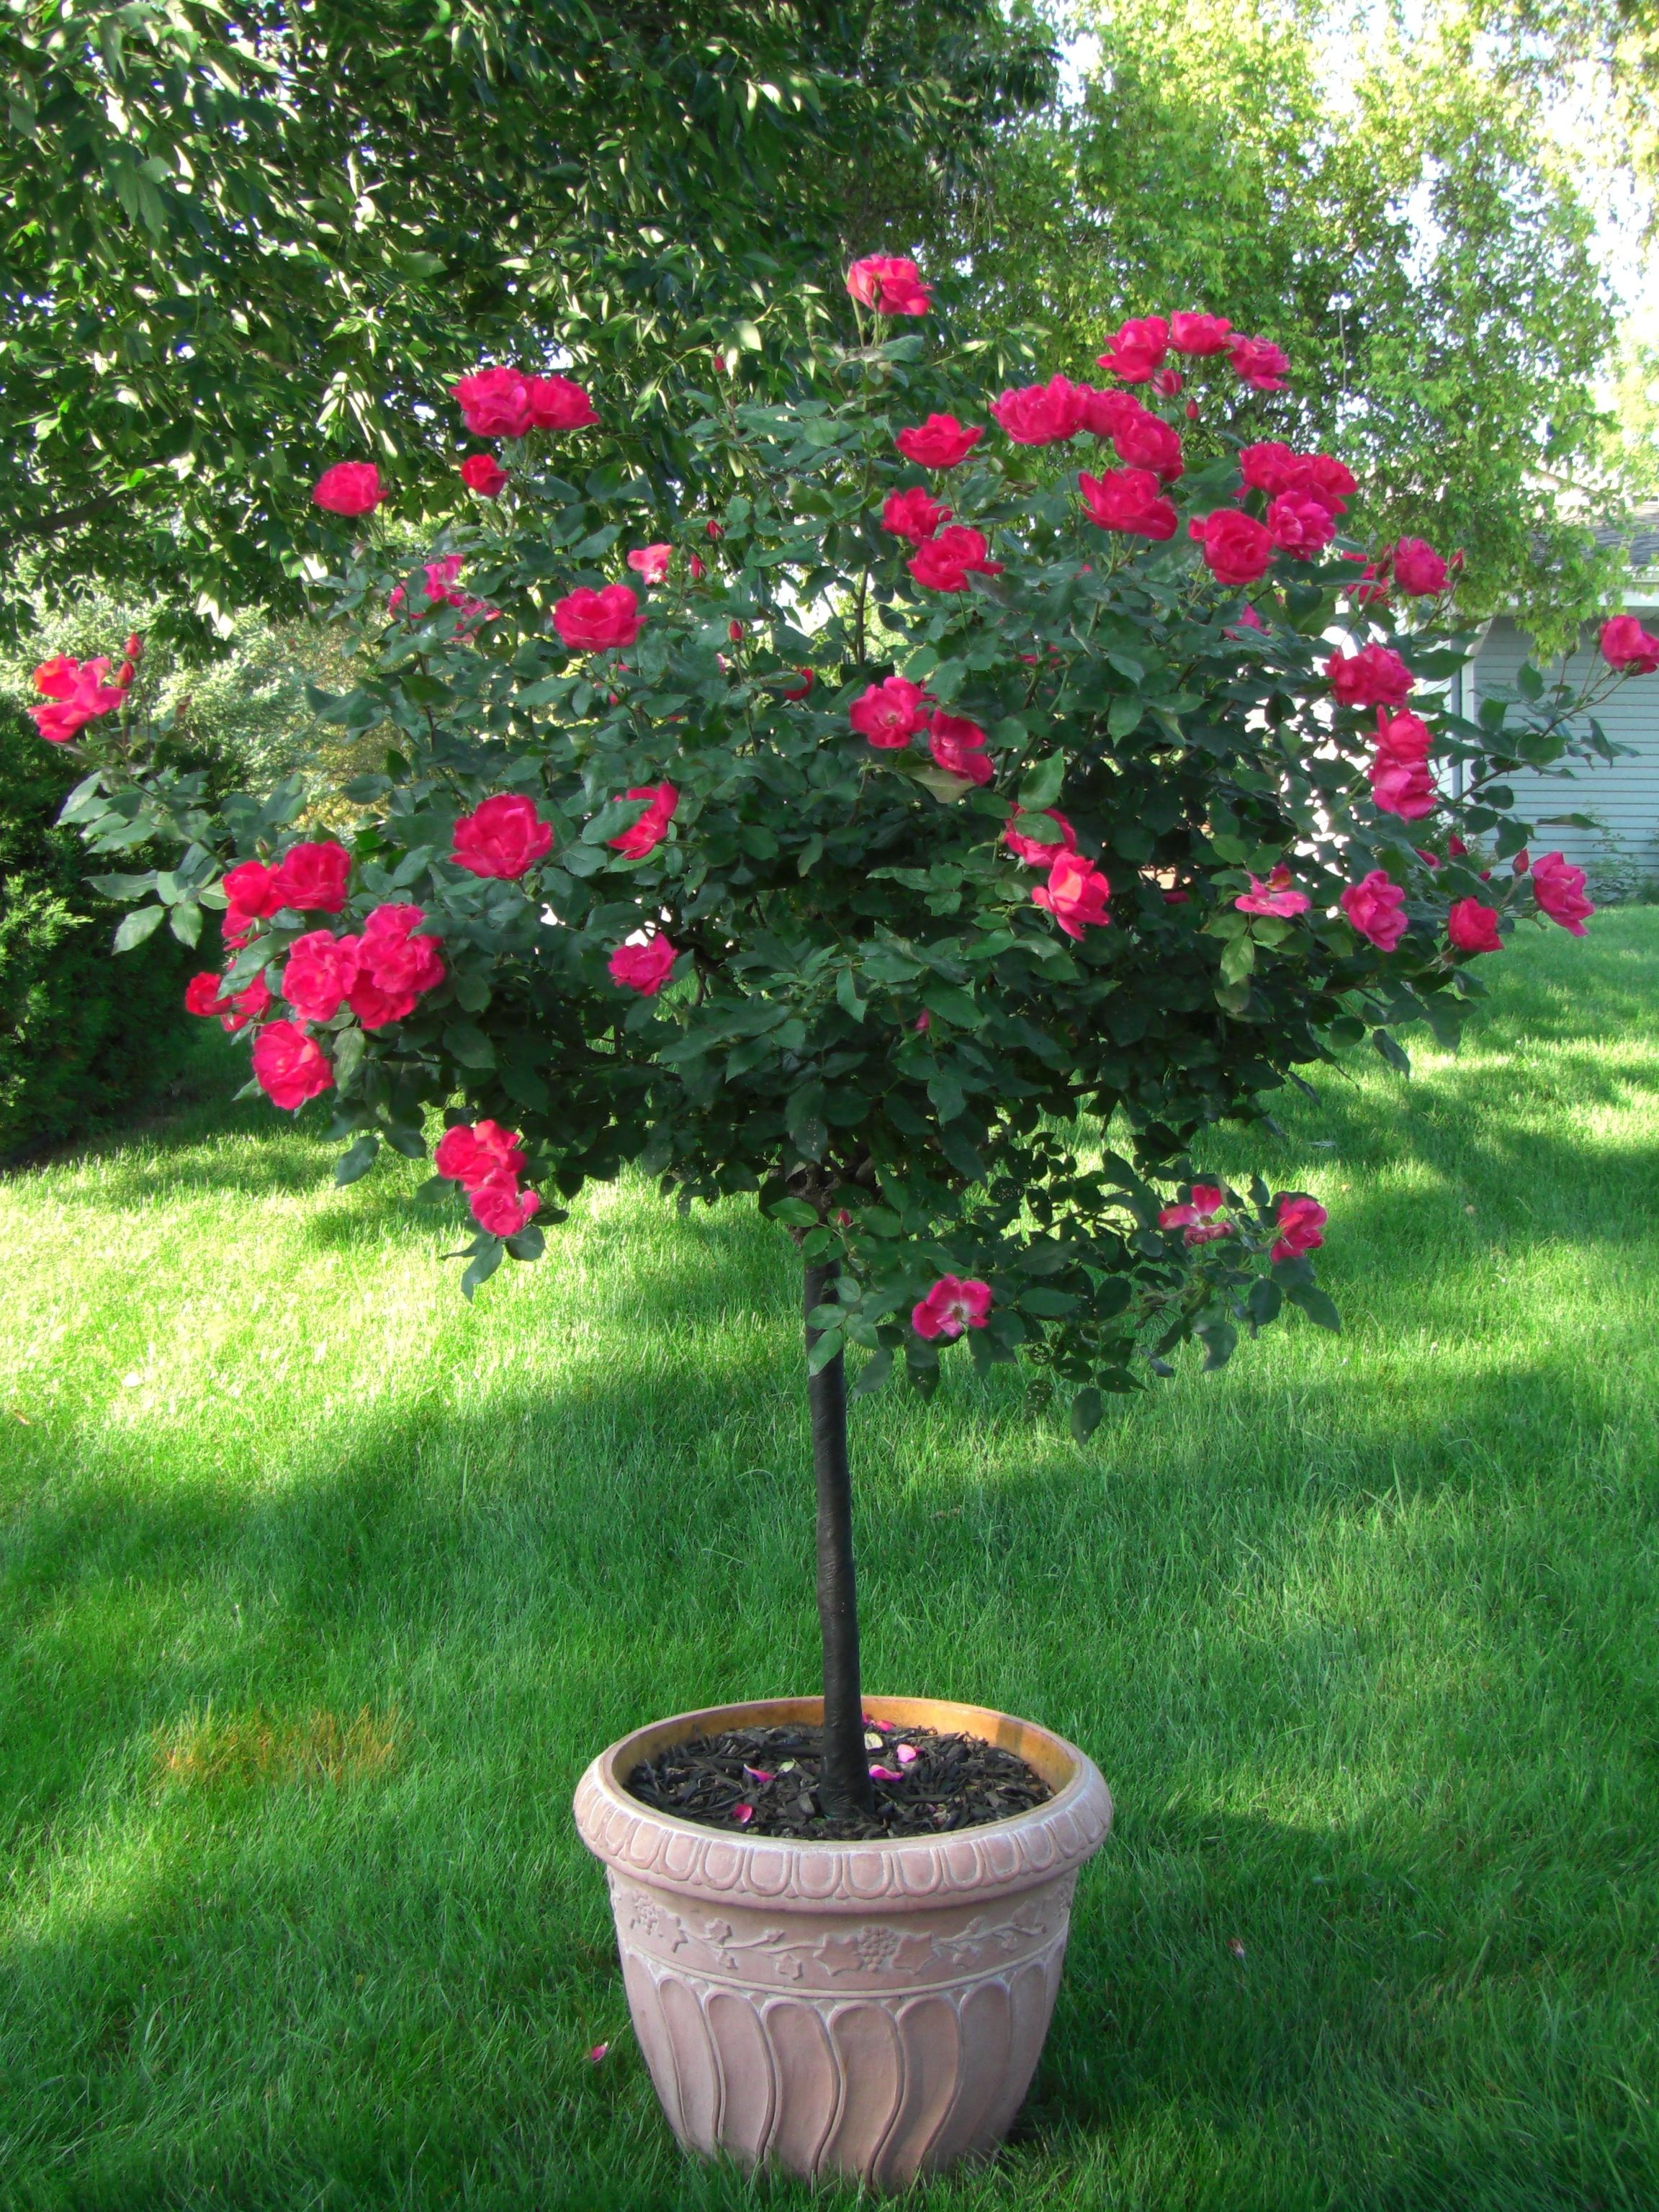 Captivating Five Patio Trees That Are A Must For Every Gardener! #PatioPlants #Roses #